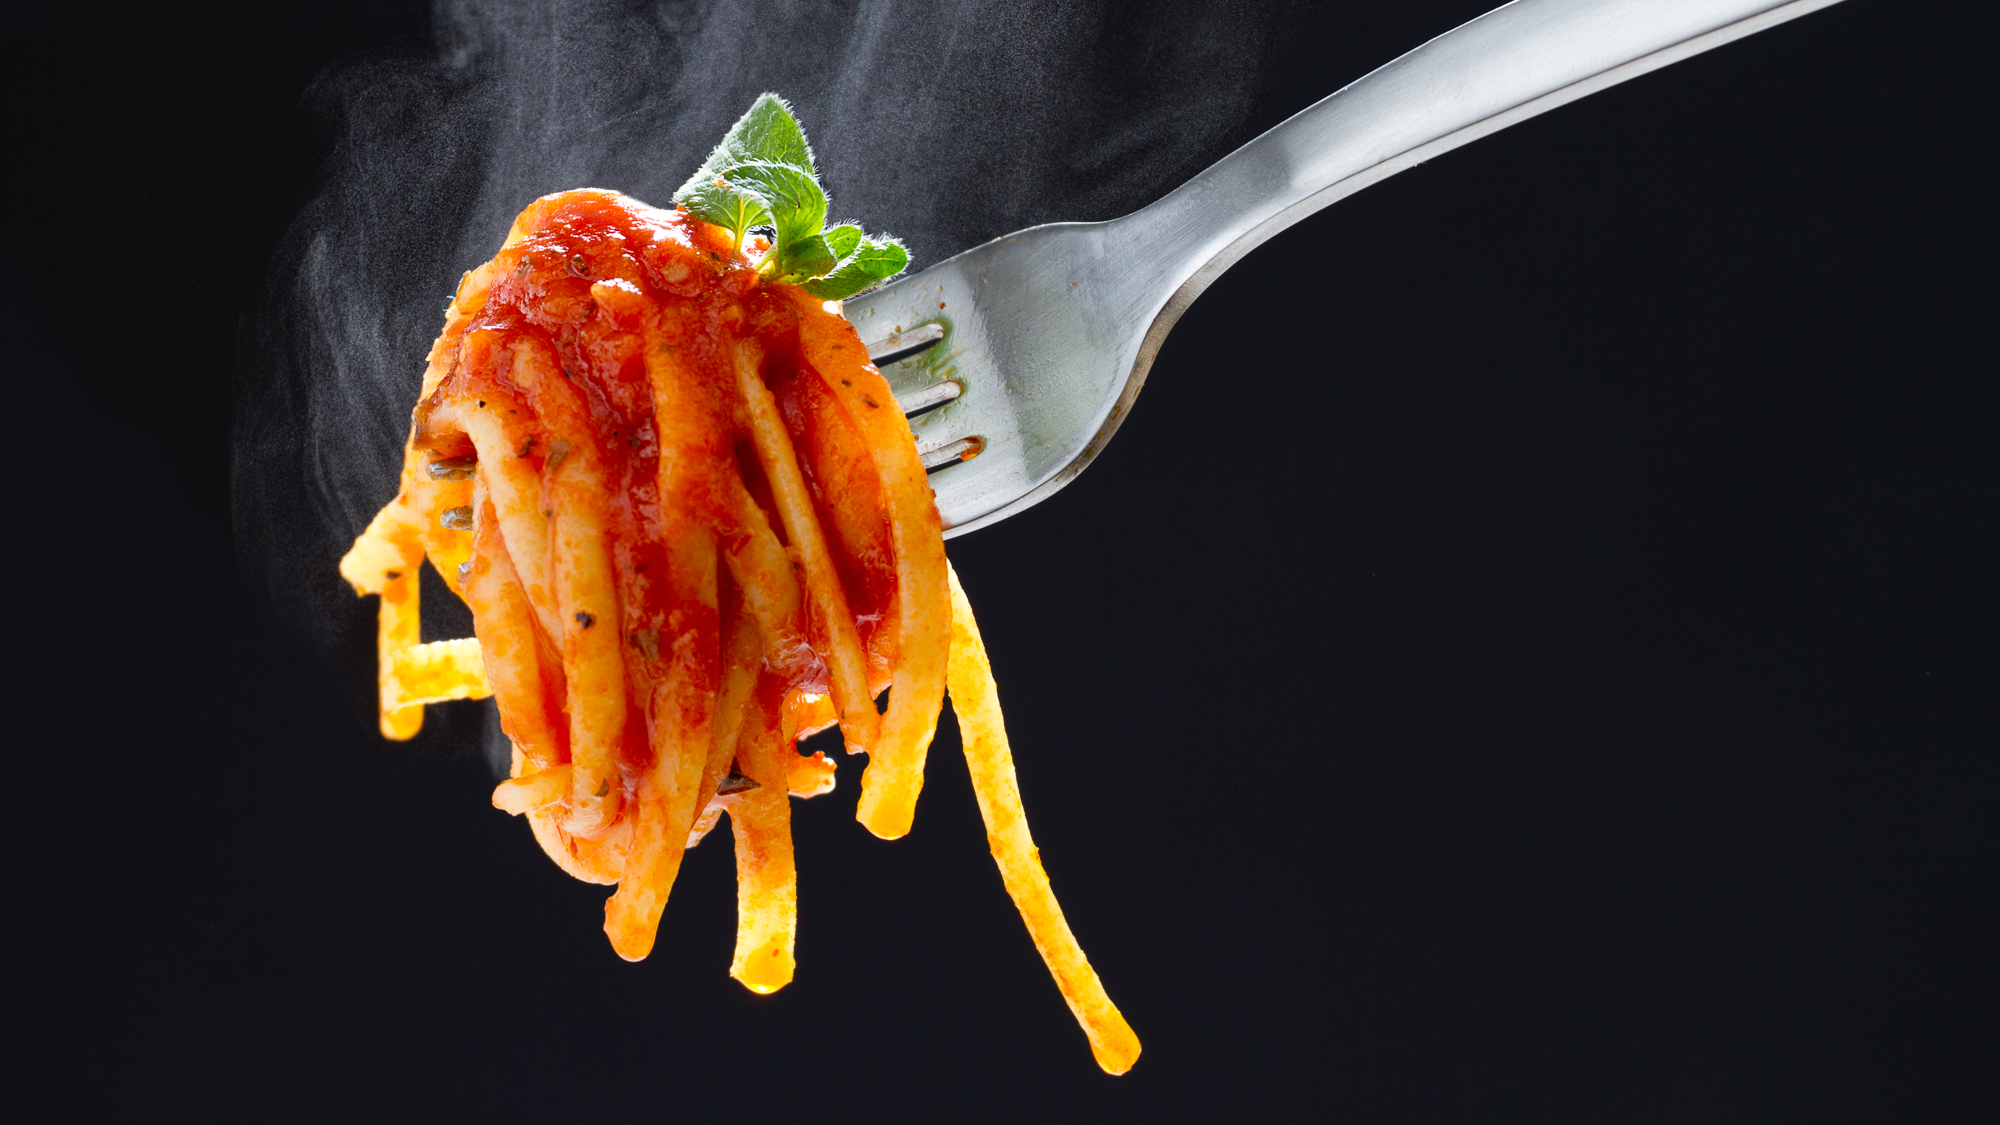 Behind the Scenes: Pasta on a Fork | Photofocus